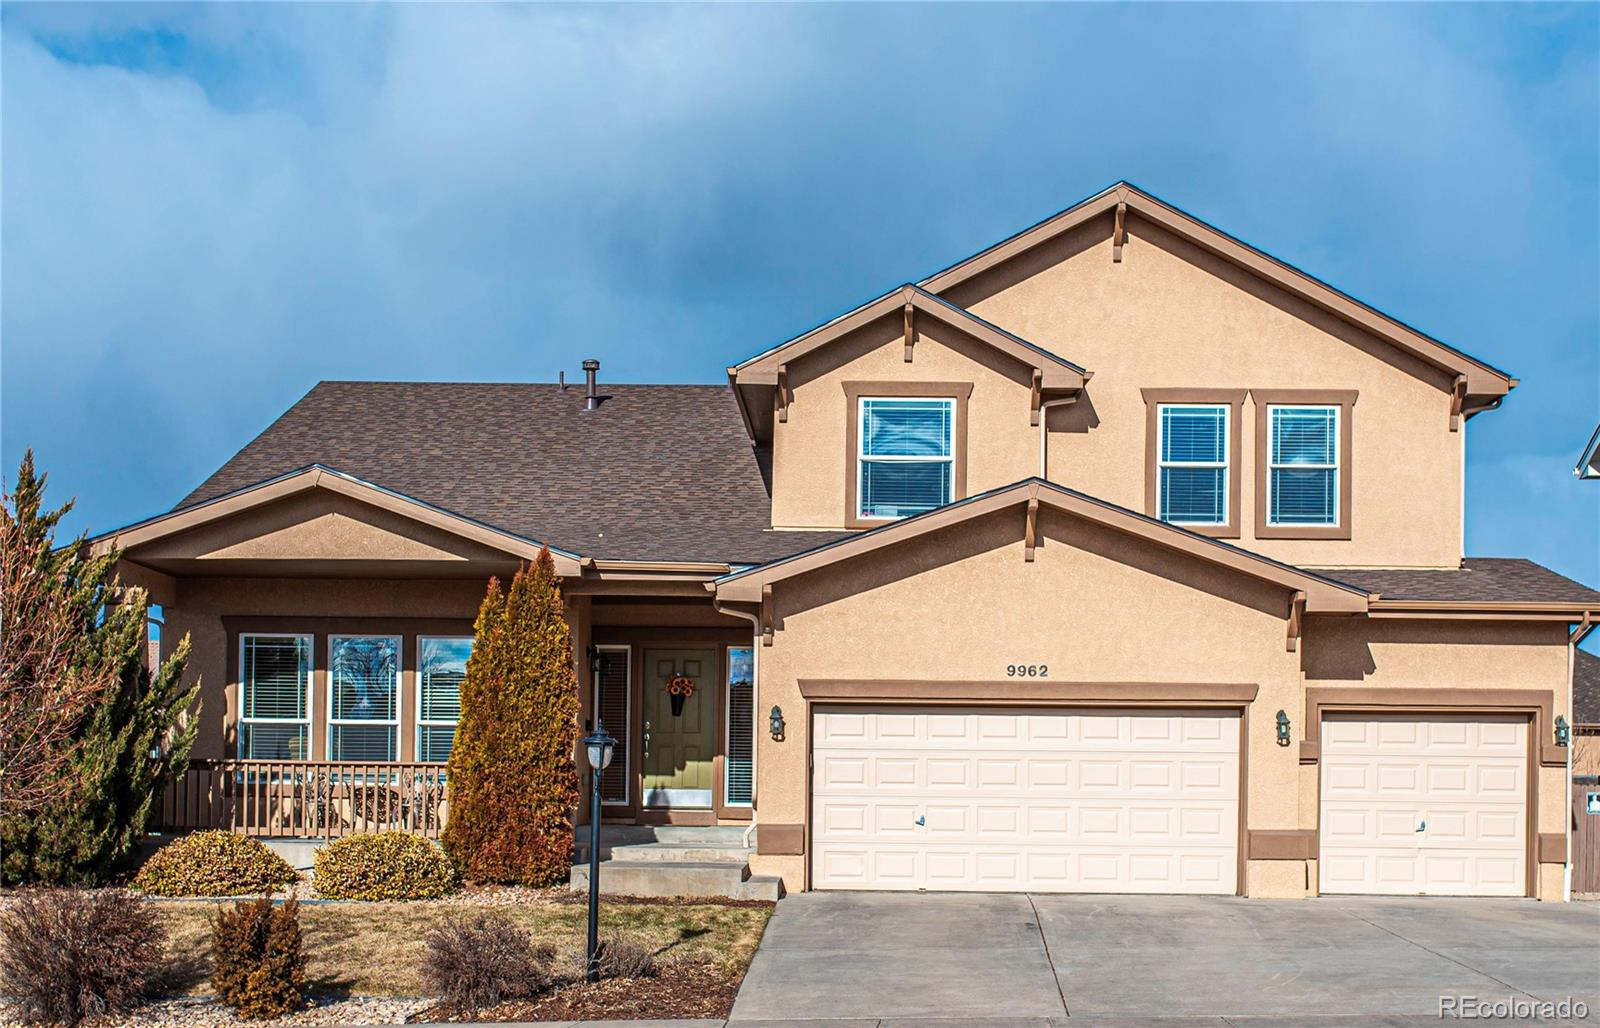 MLS# 3600079 - 1 - 9962 Pinedale Drive, Colorado Springs, CO 80920